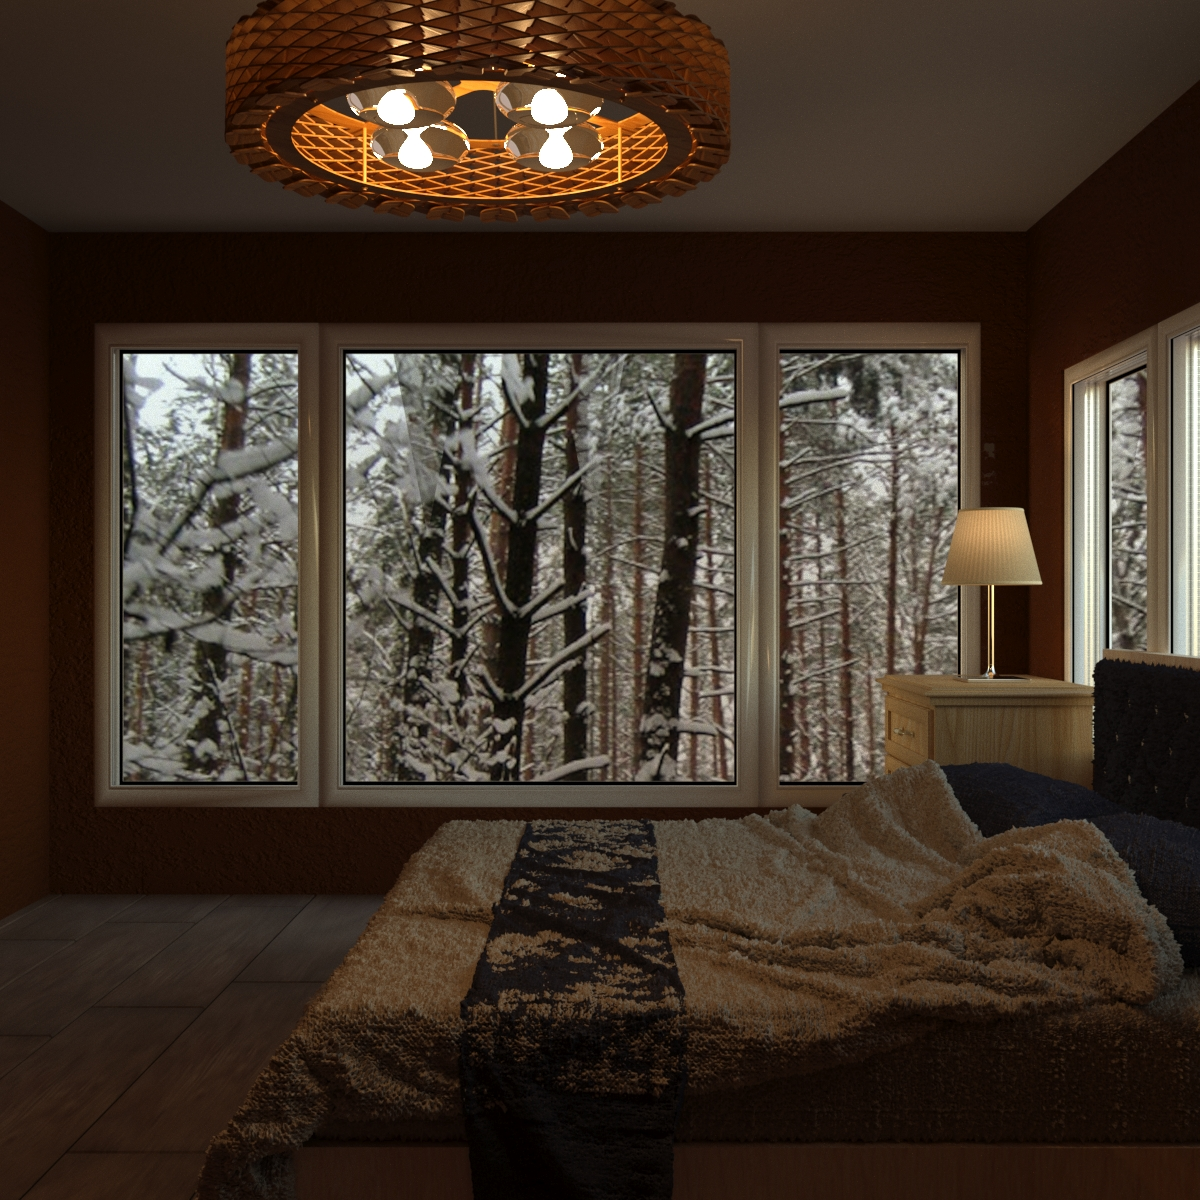 3d visualization of the project in the Bedroom 3d max, render corona render of Deshem